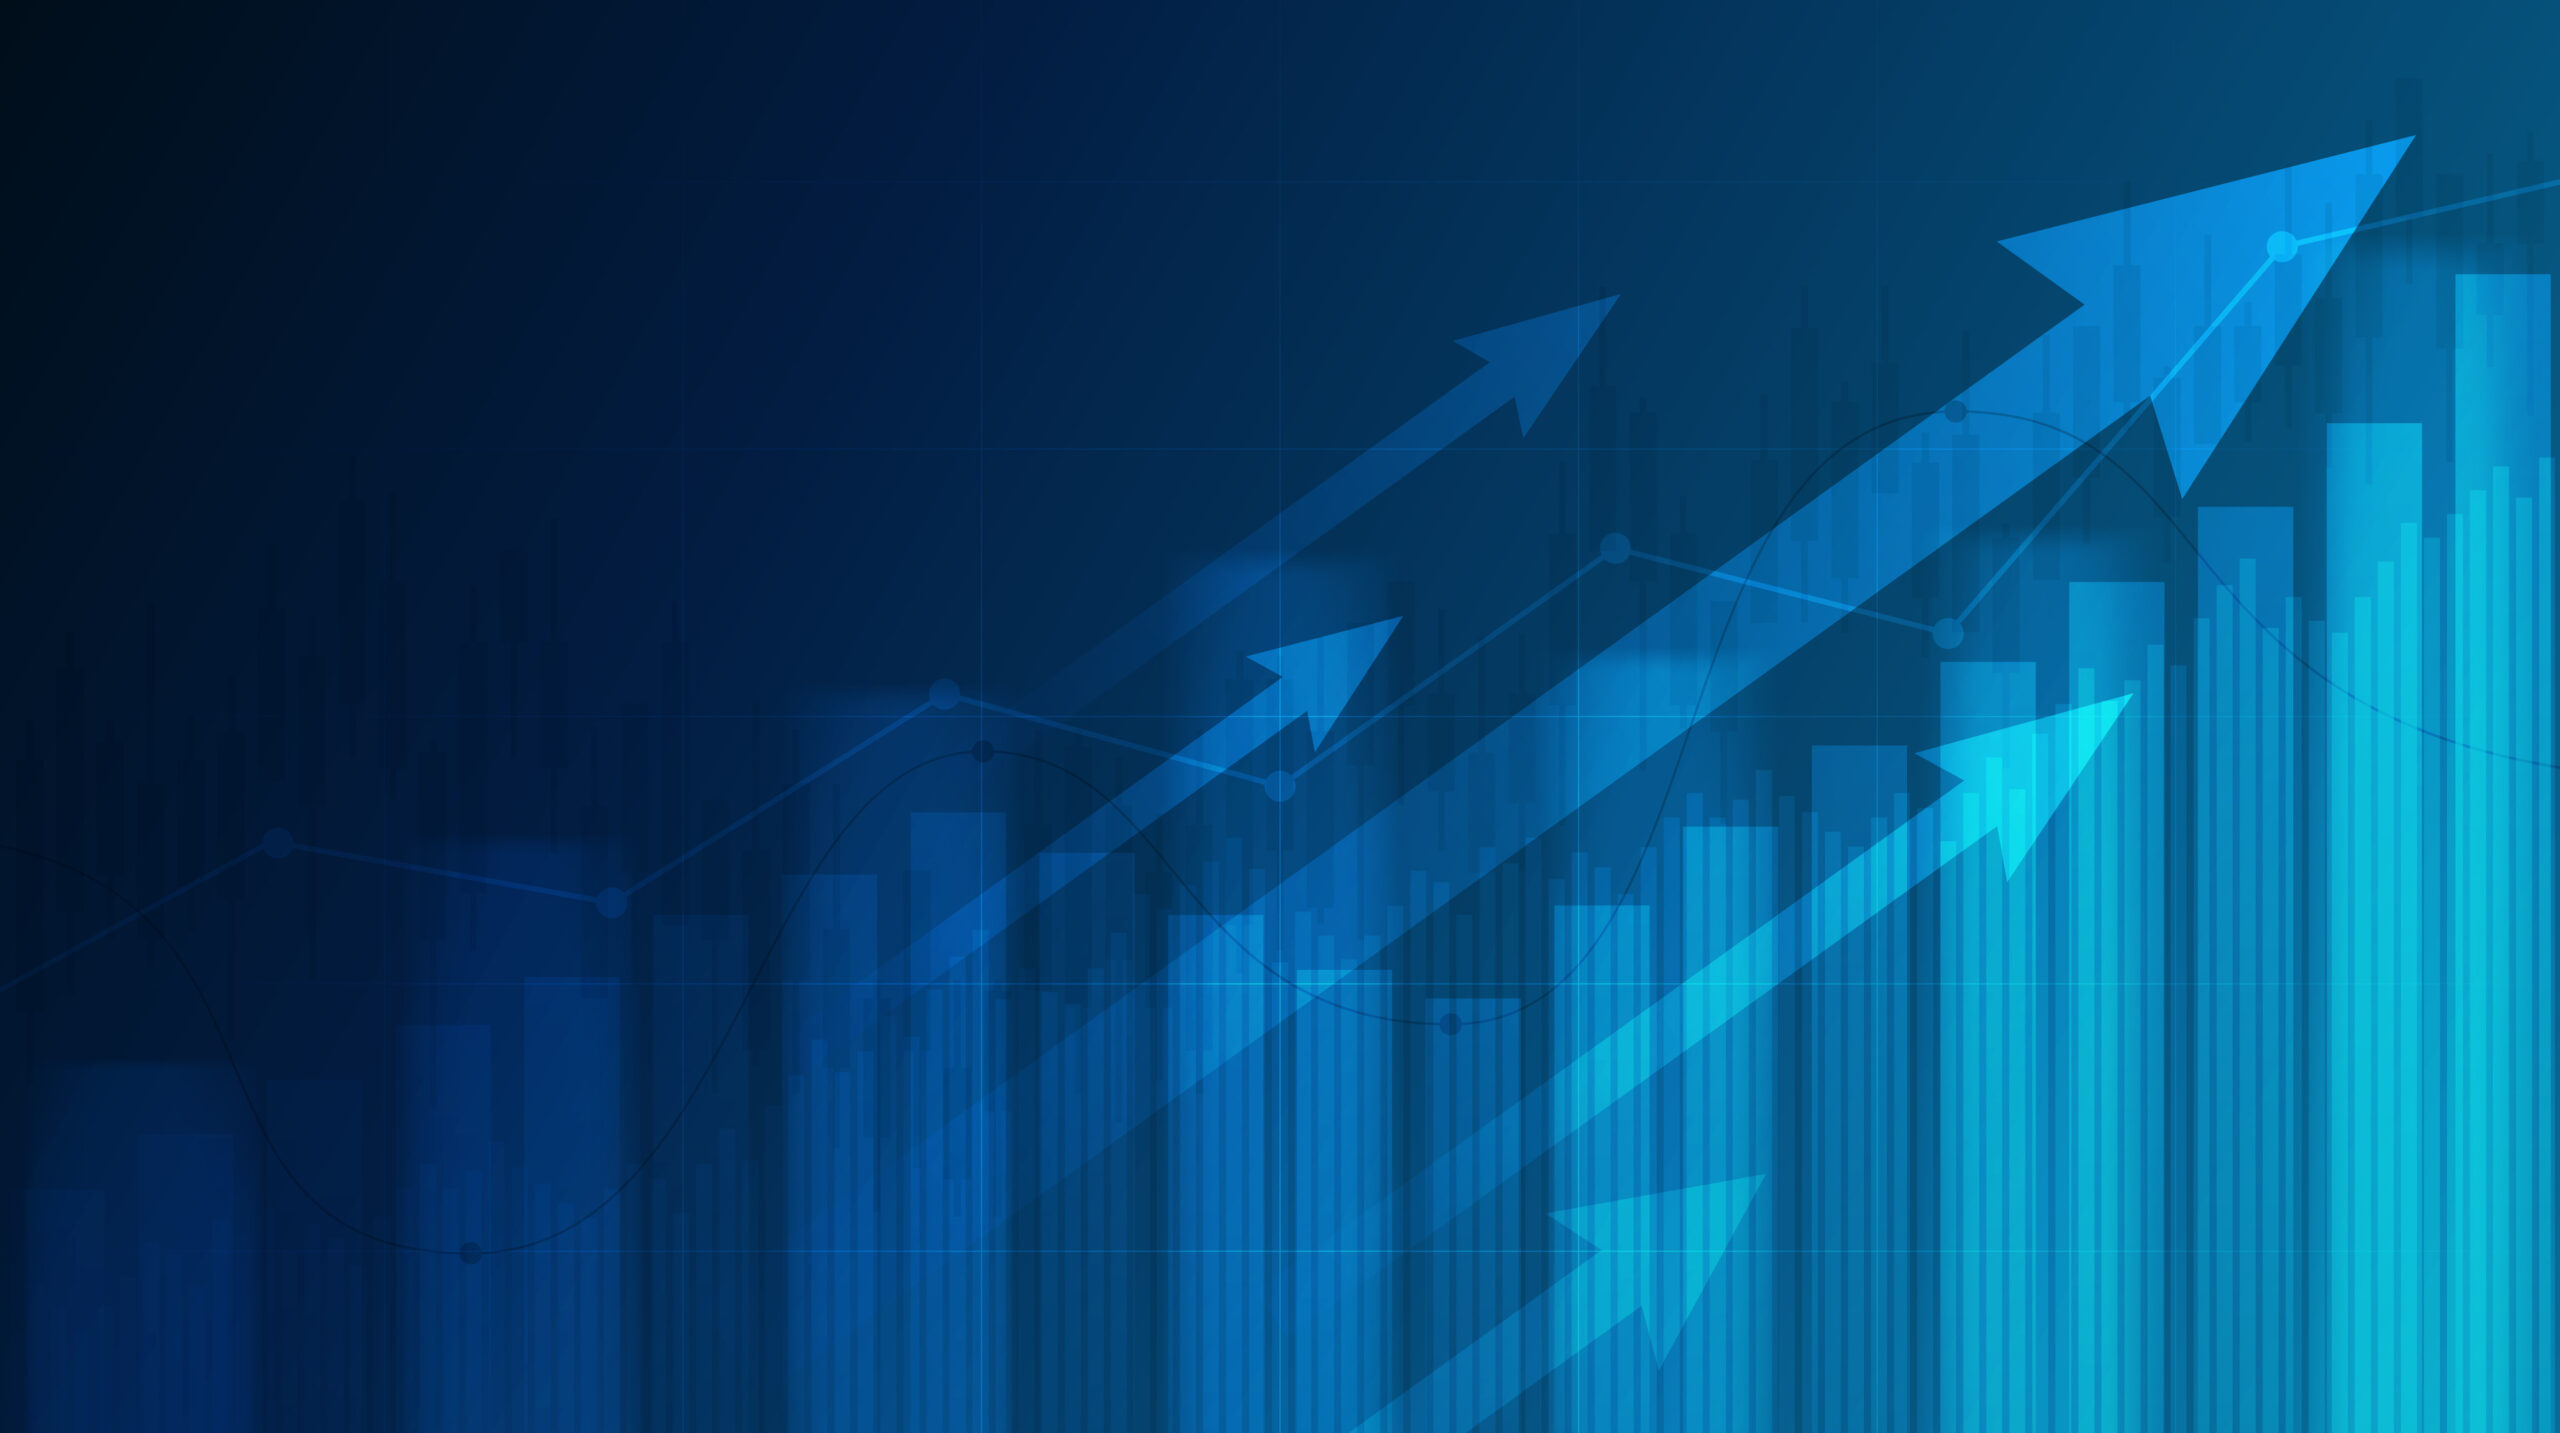 Abstract financial graph with uptrend line and arrows in stock market on blue color background